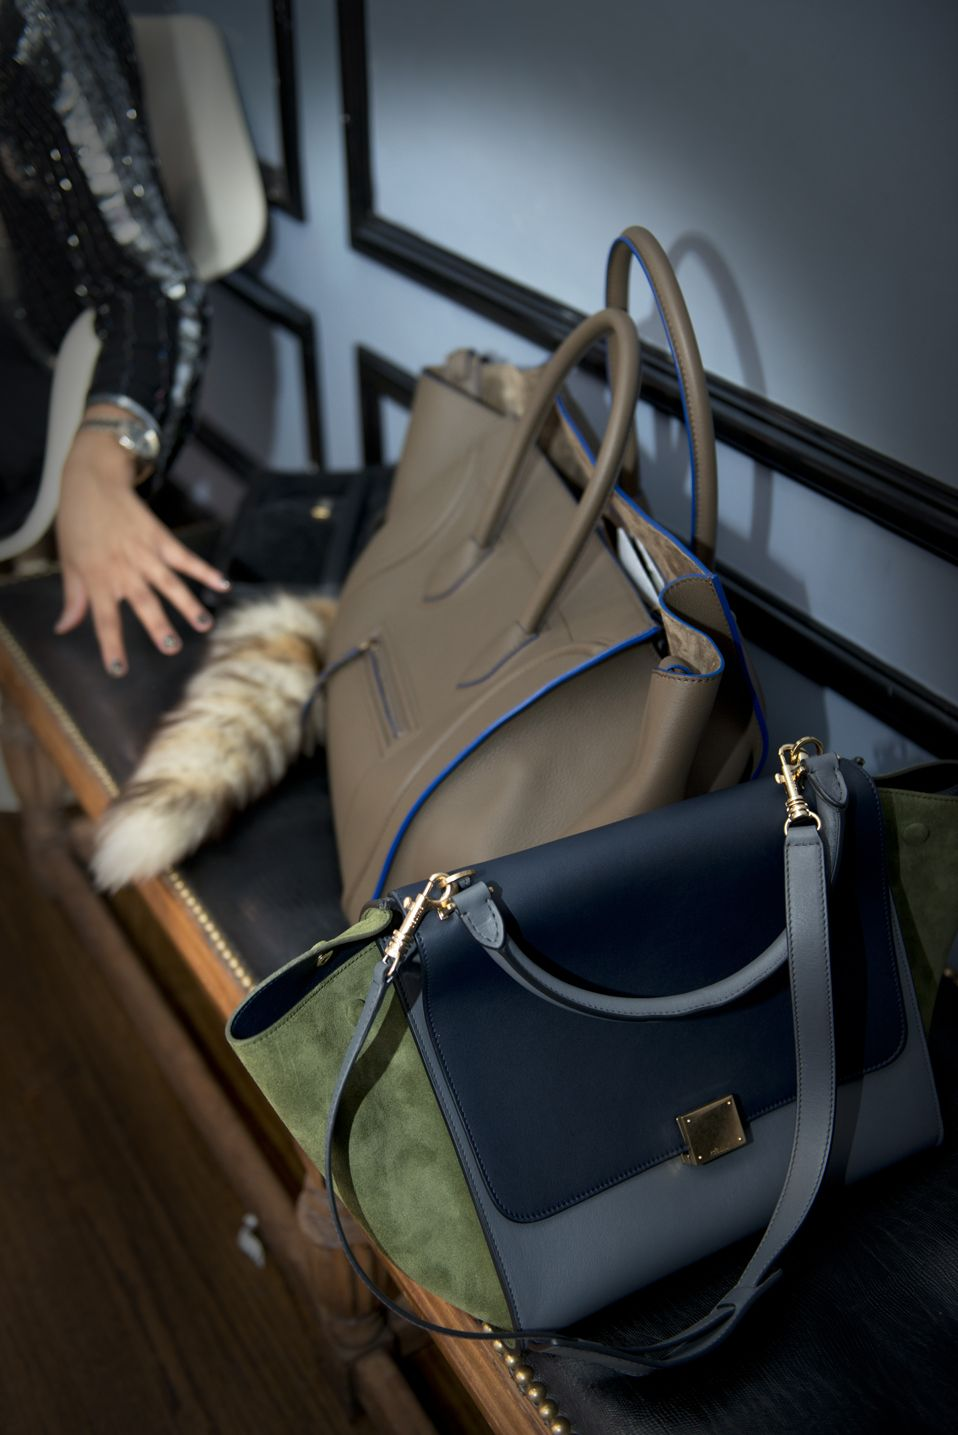 3710b352dd41 My Celine Trapeze bag in green suede with blue and grey colors and my  friend s Celine